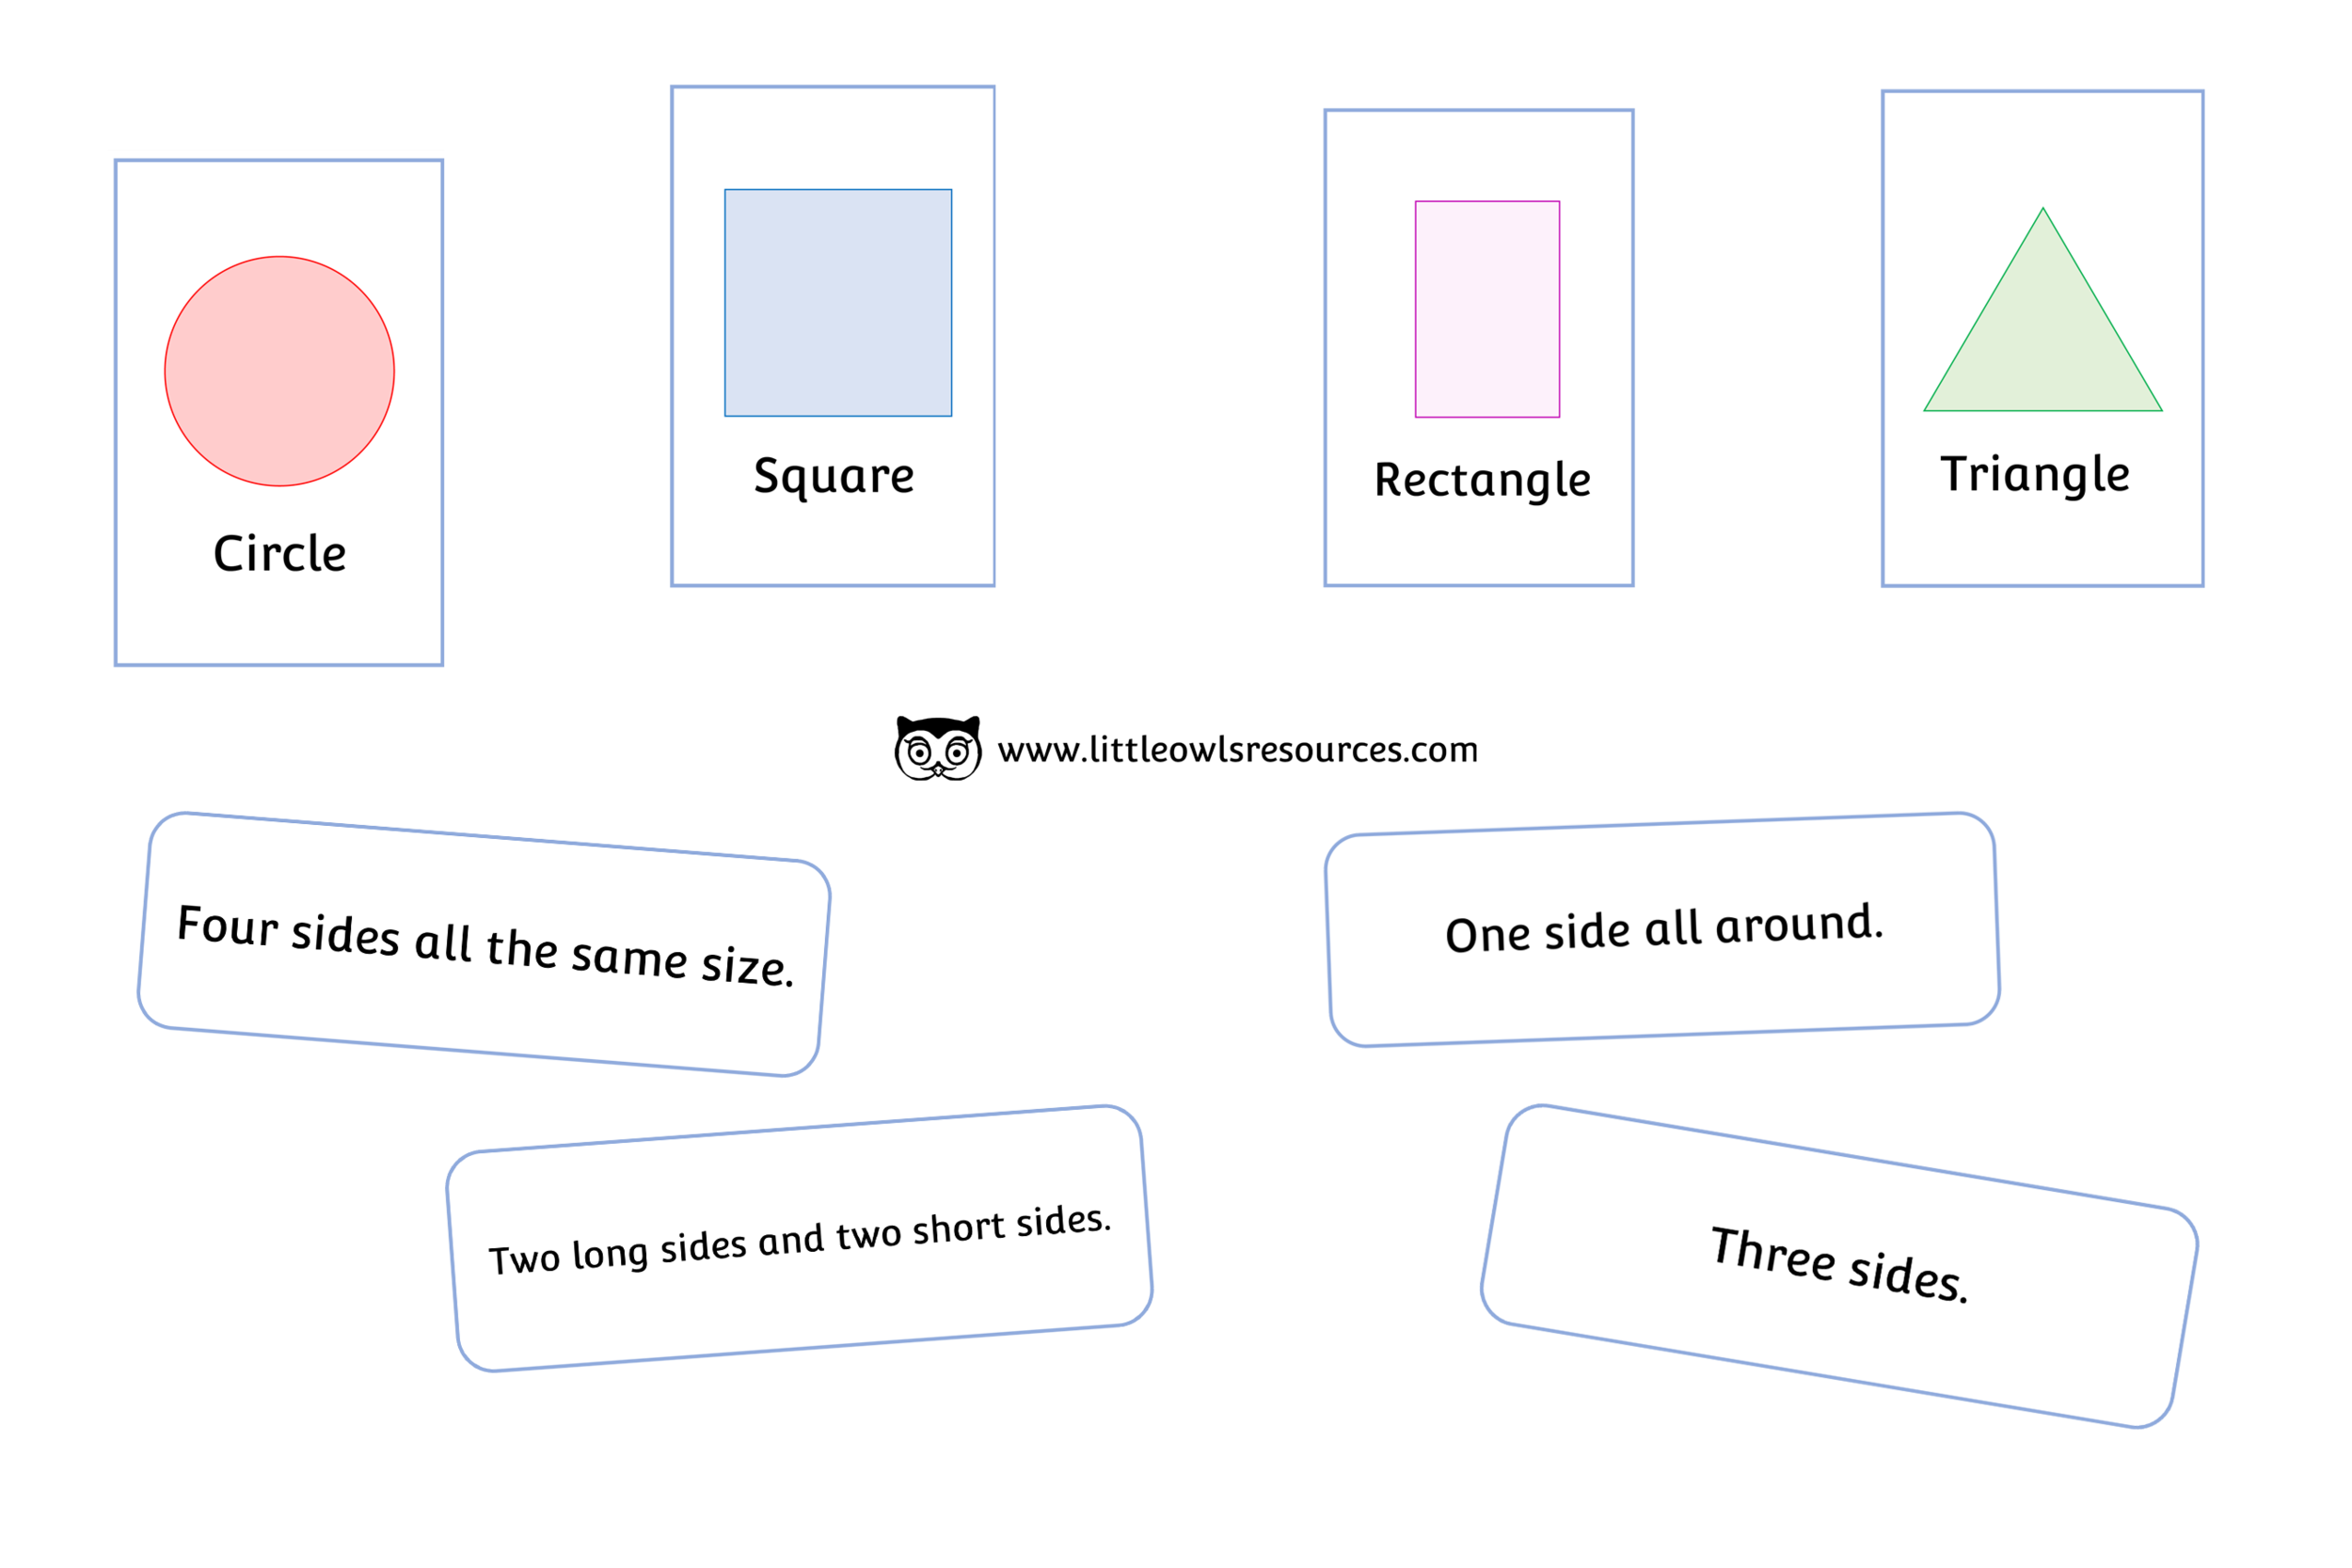 2D SHAPE DESCRIPTION MATCHING CARDS AND STATEMENTS